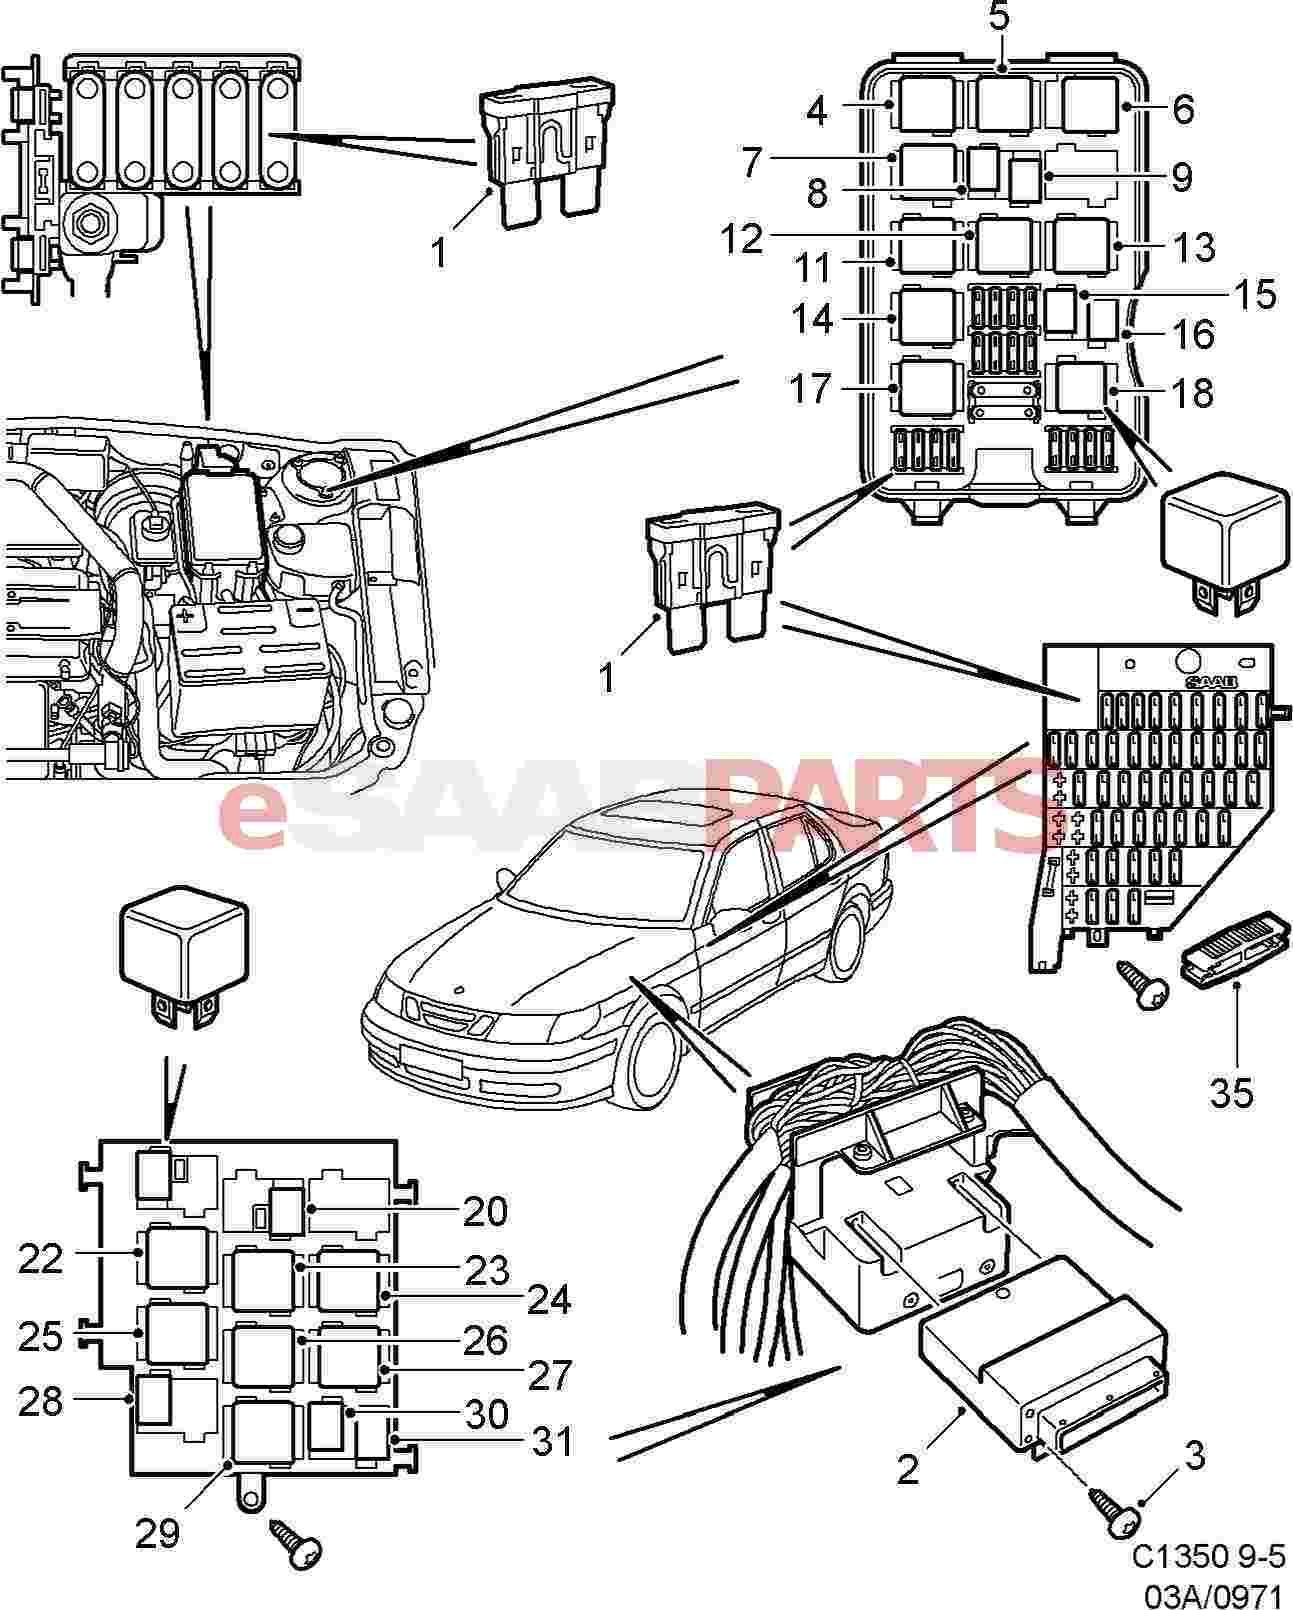 Saab 9000 Headlight Wiring Diagram